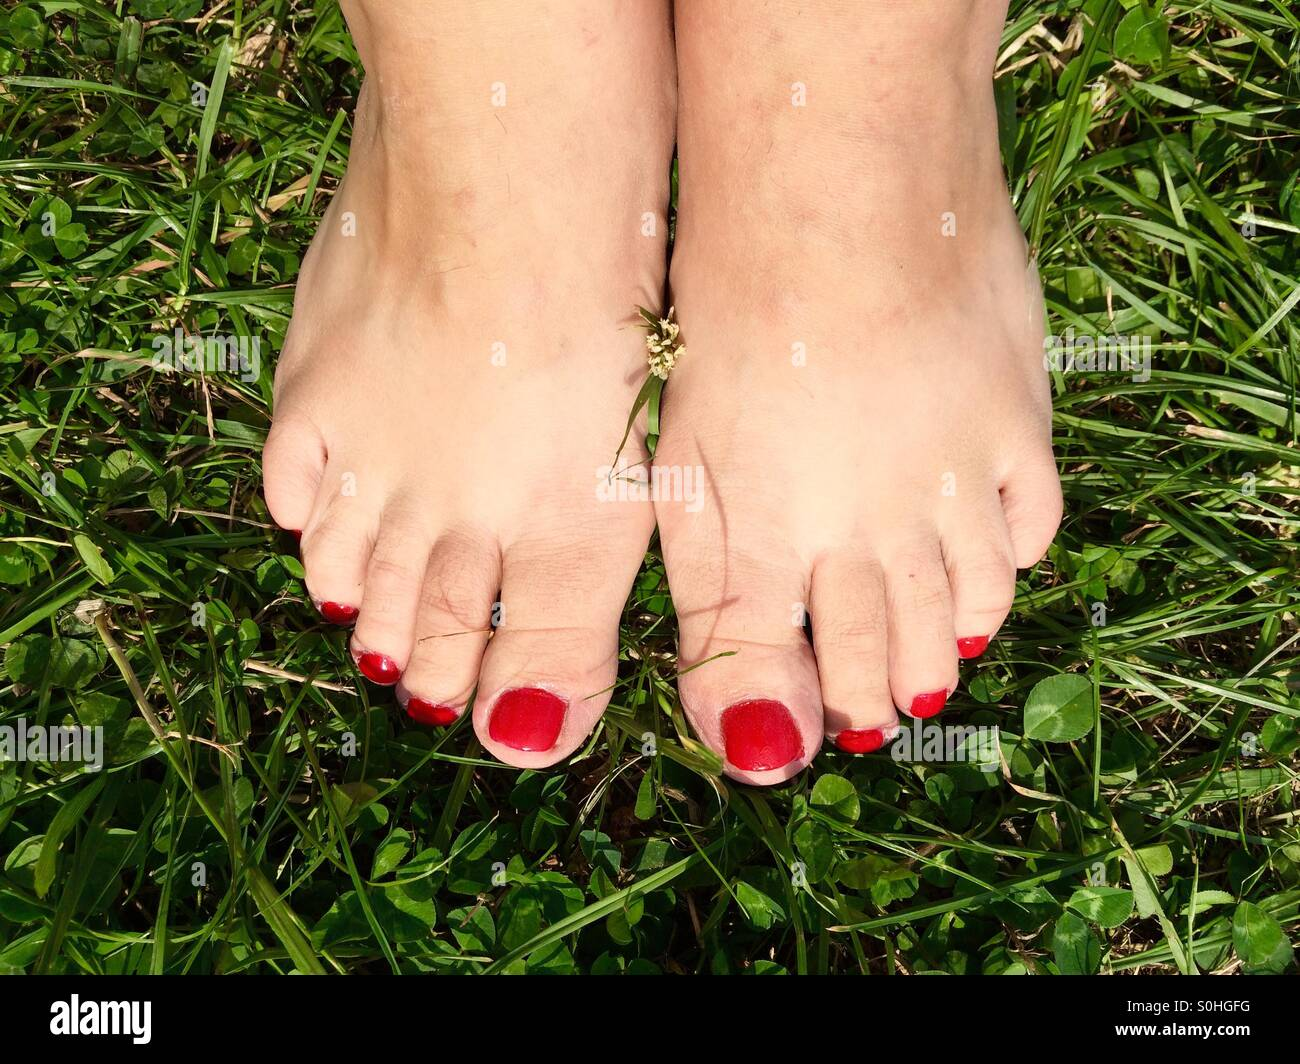 Woman's feet with red nailpolish bare on the grass - Stock Image